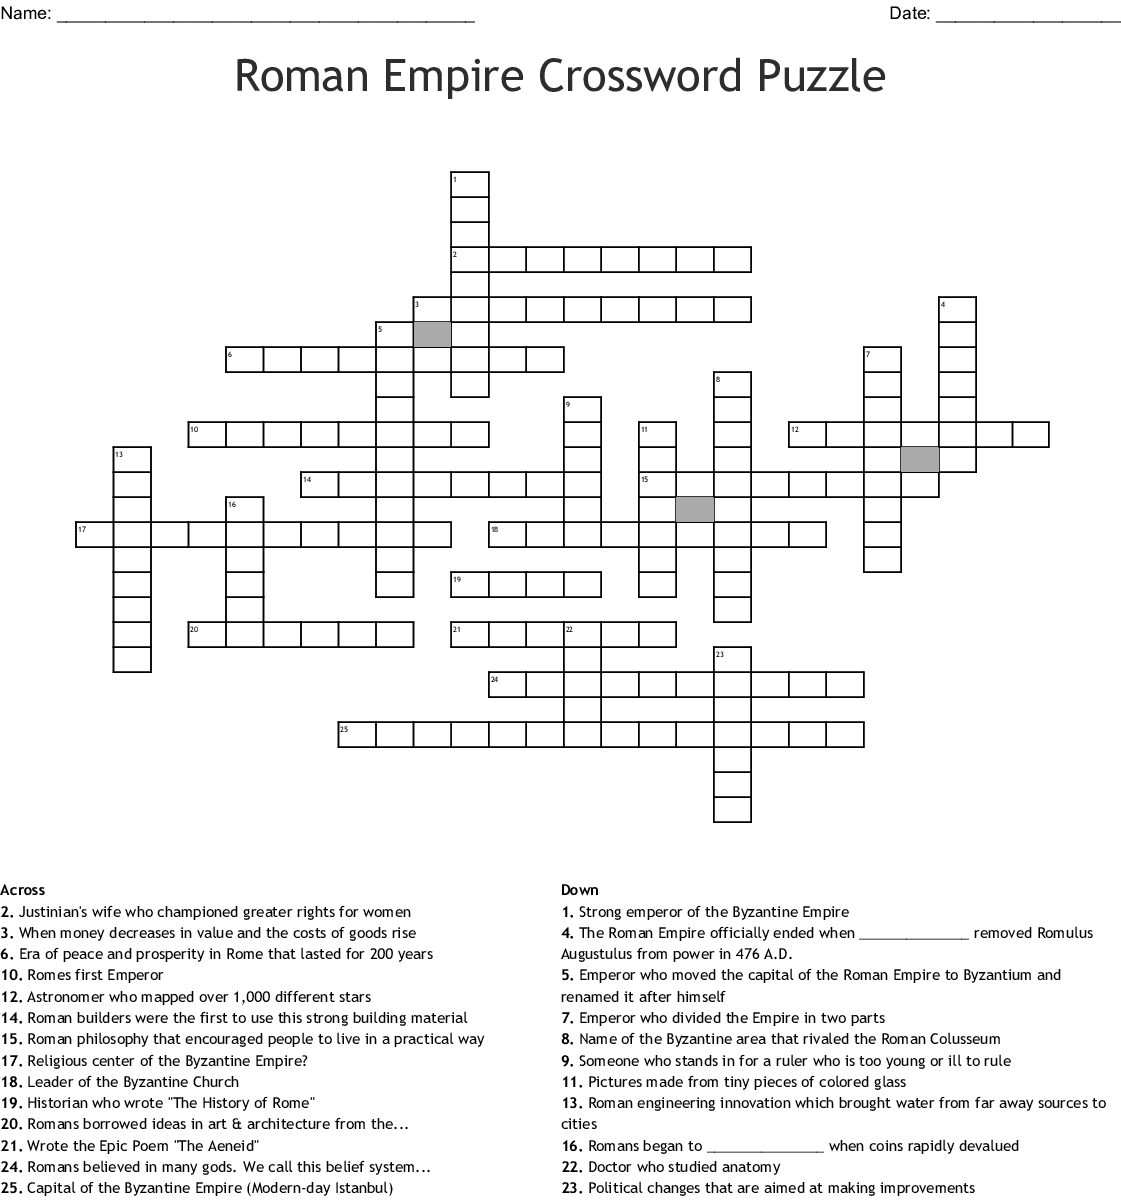 Roman Empire Crossword Puzzle Word